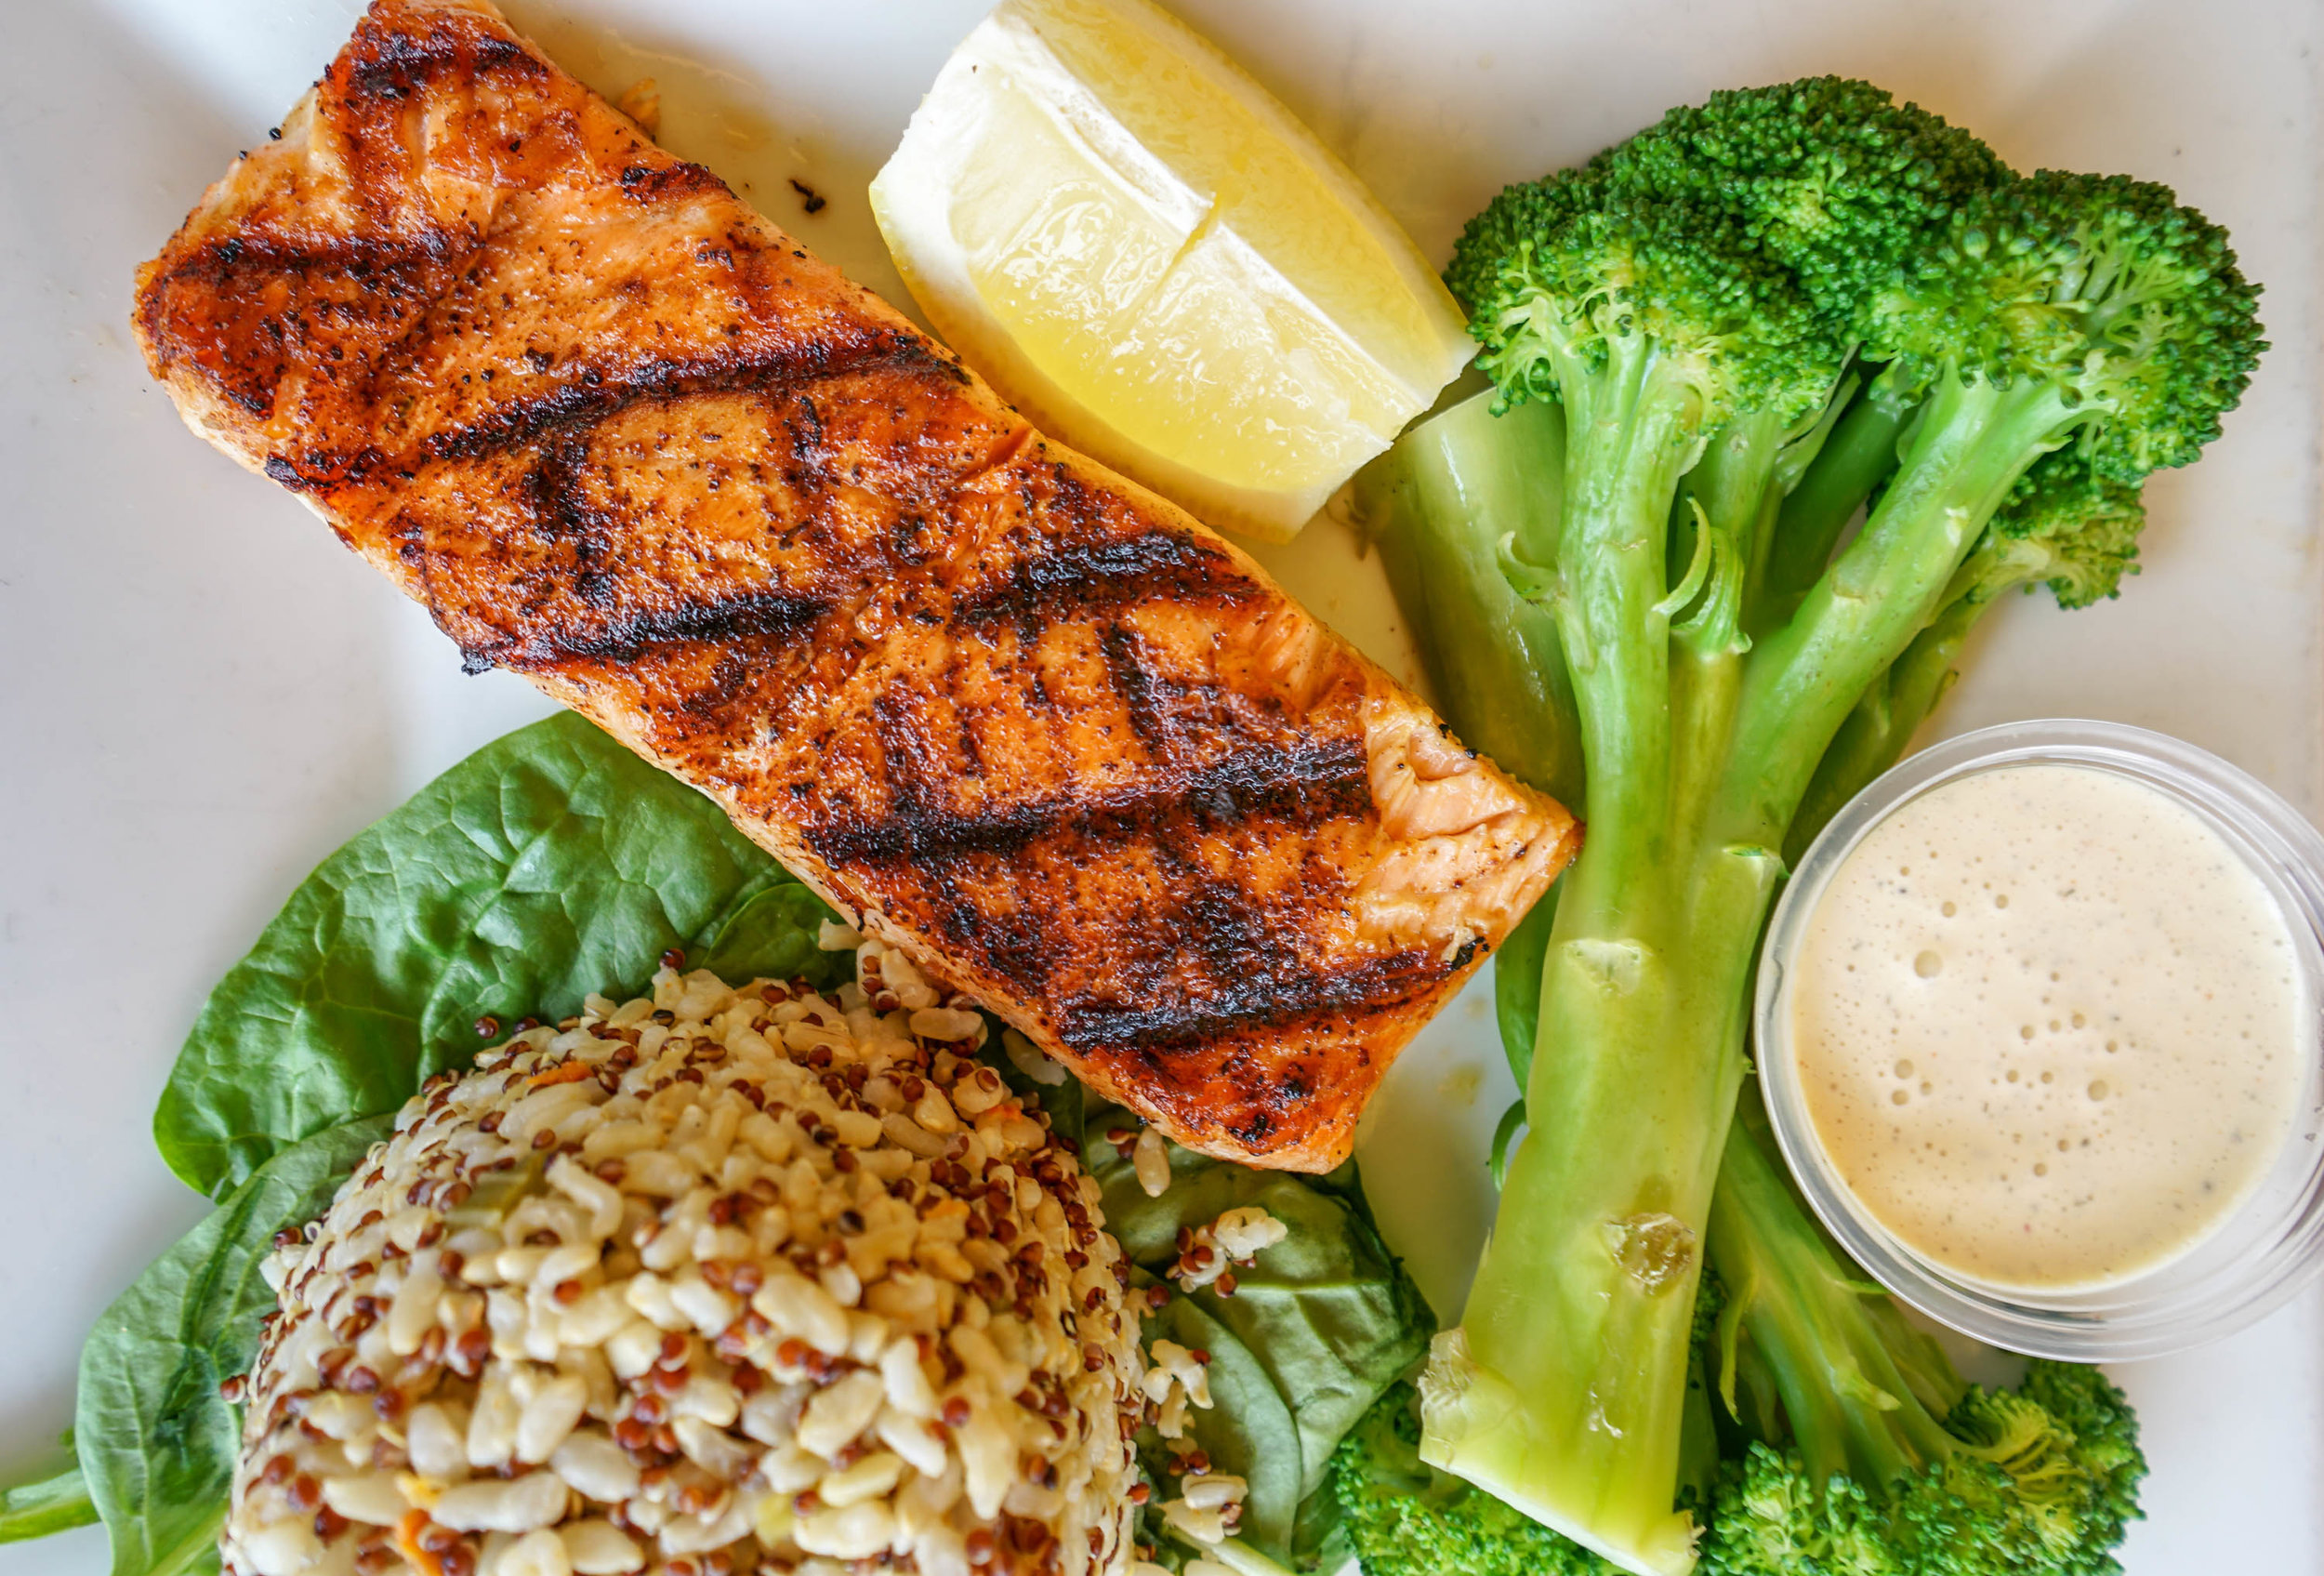 grilled salmon, fresh broccoli with quinoa rice